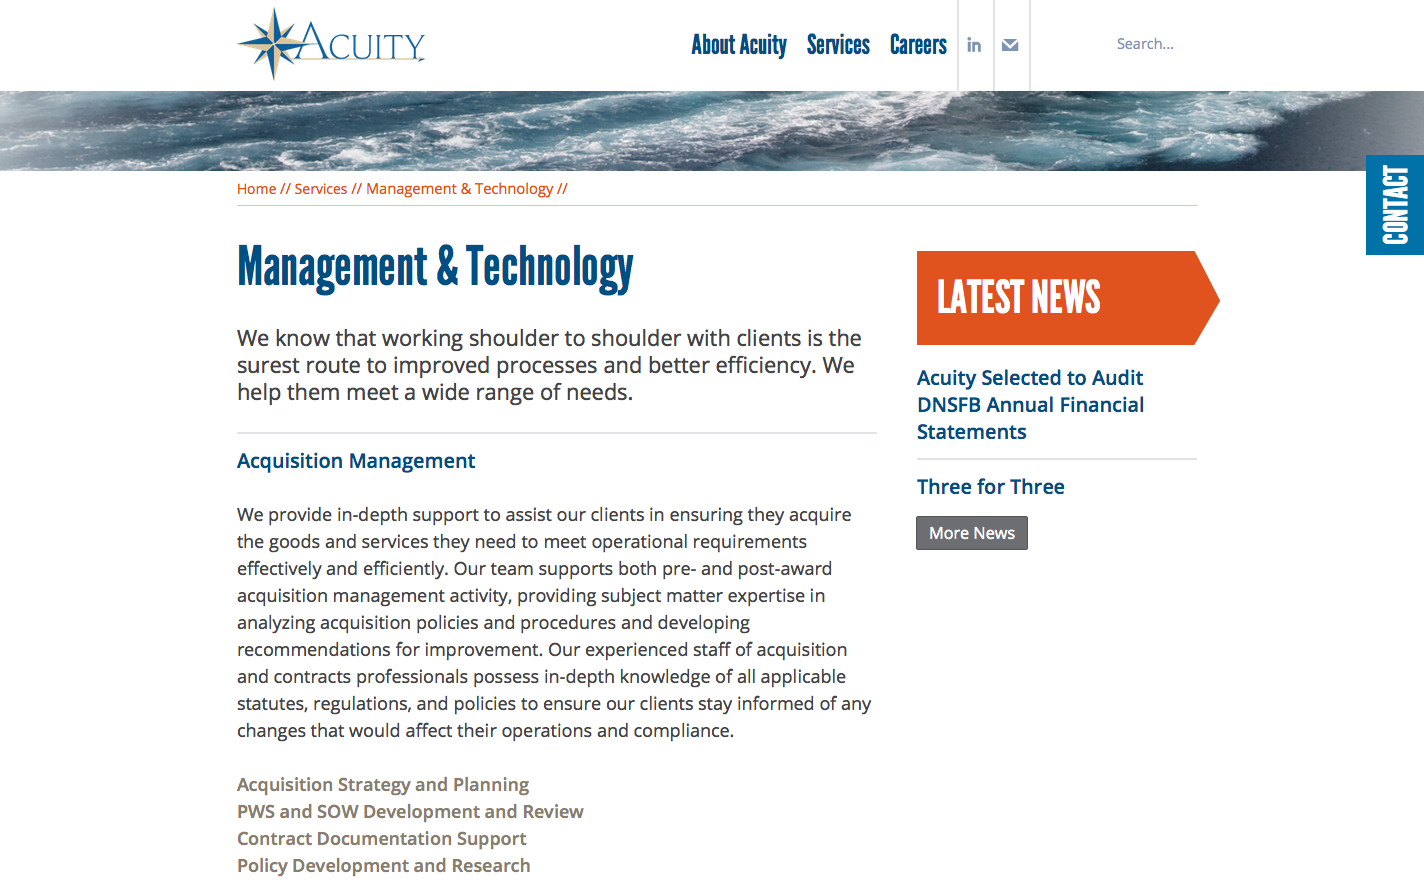 Acuity Consulting website subpage